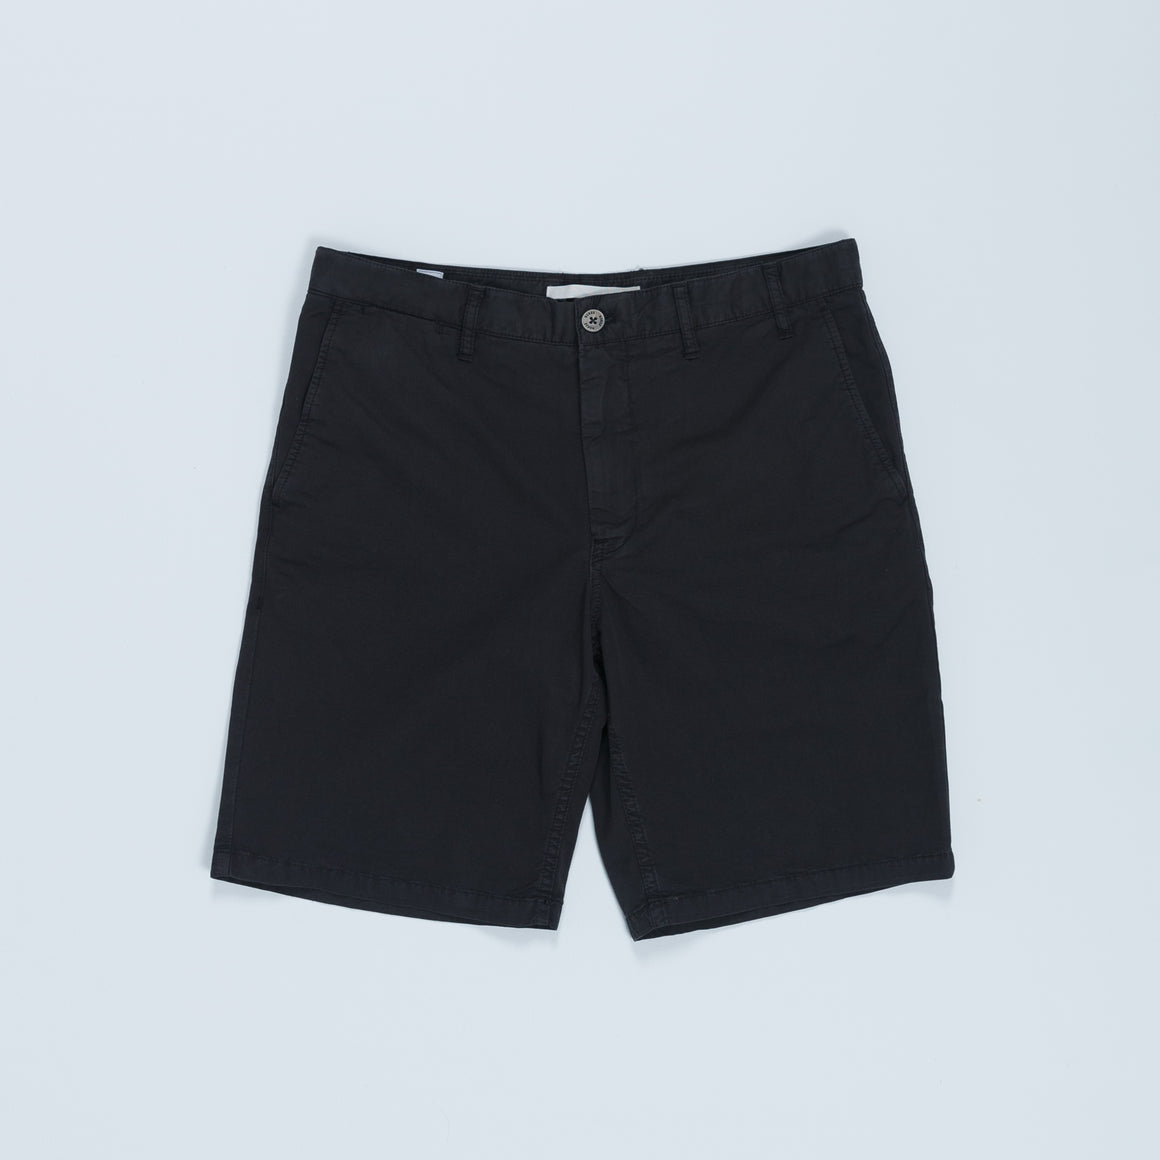 Aros Light Twill Shorts - Black - Up There